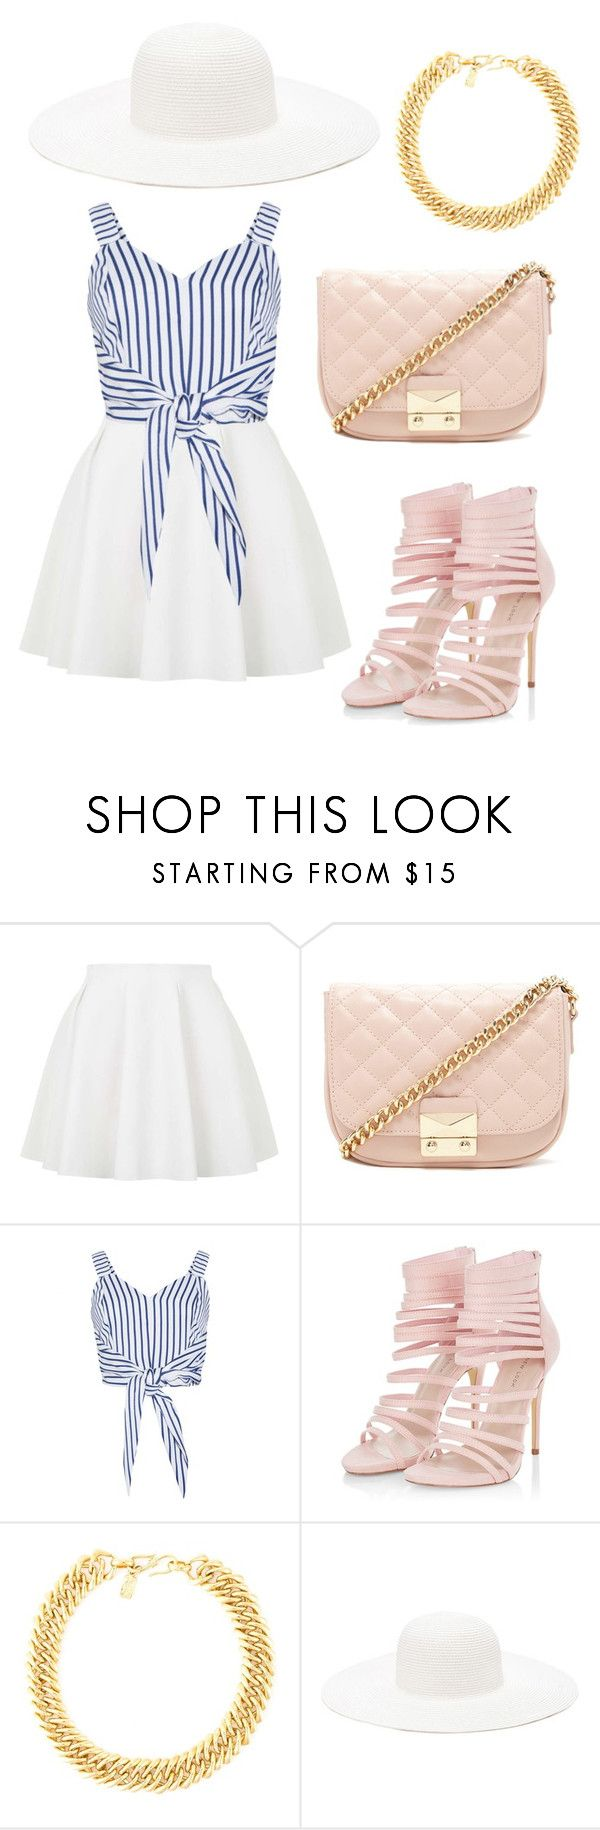 """Fashion Cute Outfit Sprimg 2016"" by diamondanna ❤ liked on Polyvore featuring Topshop, Forever 21 and Yves Saint Laurent"